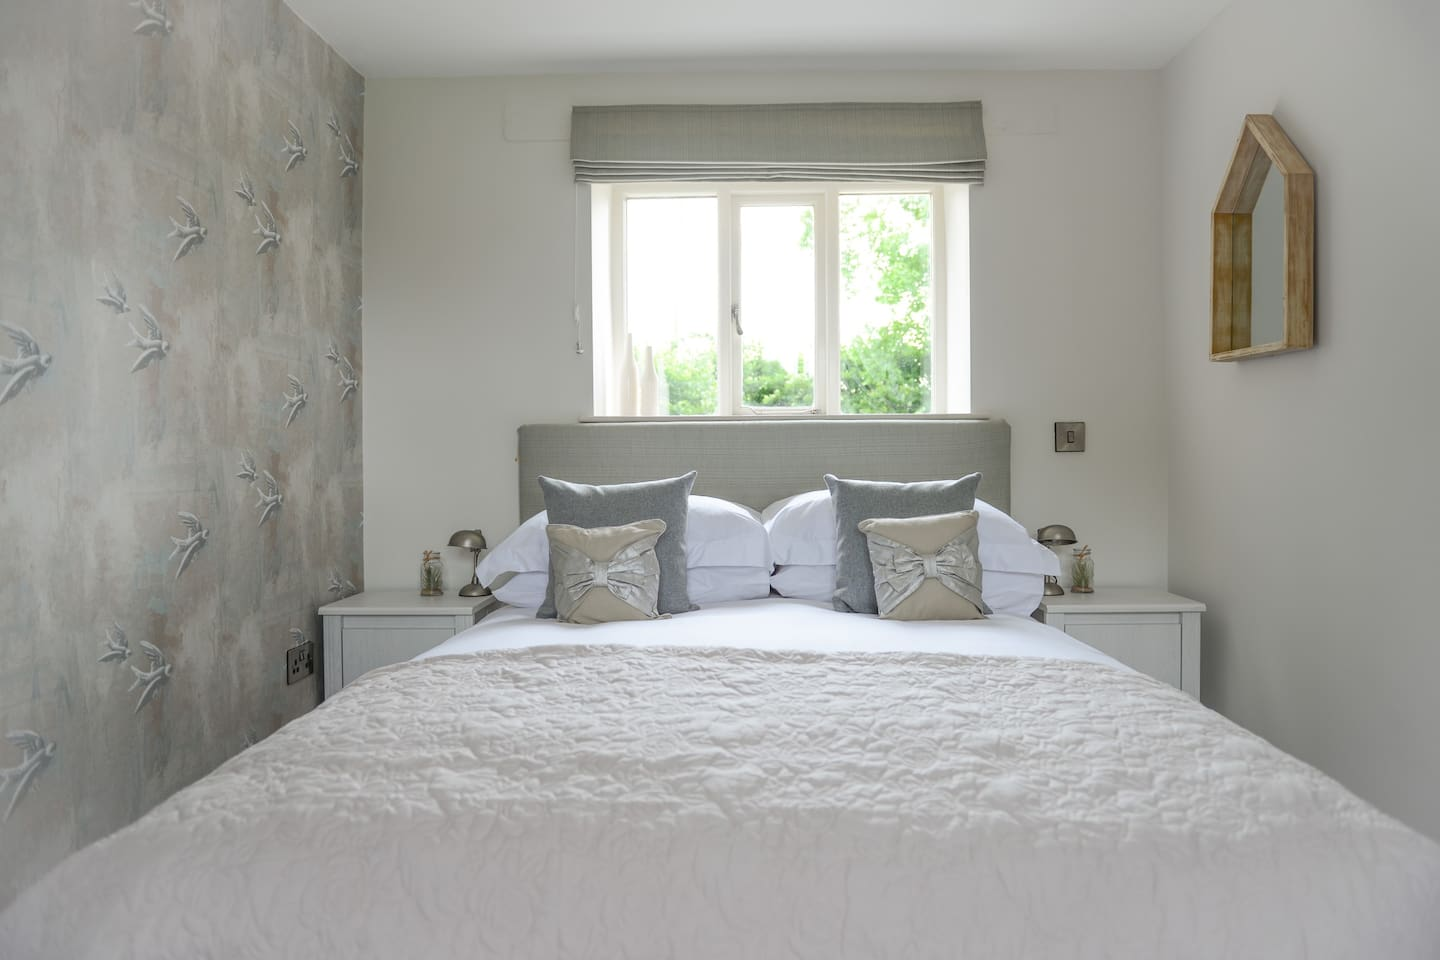 Garden Cottahe - King-size bed fitted with Egyptian Cotton sheets